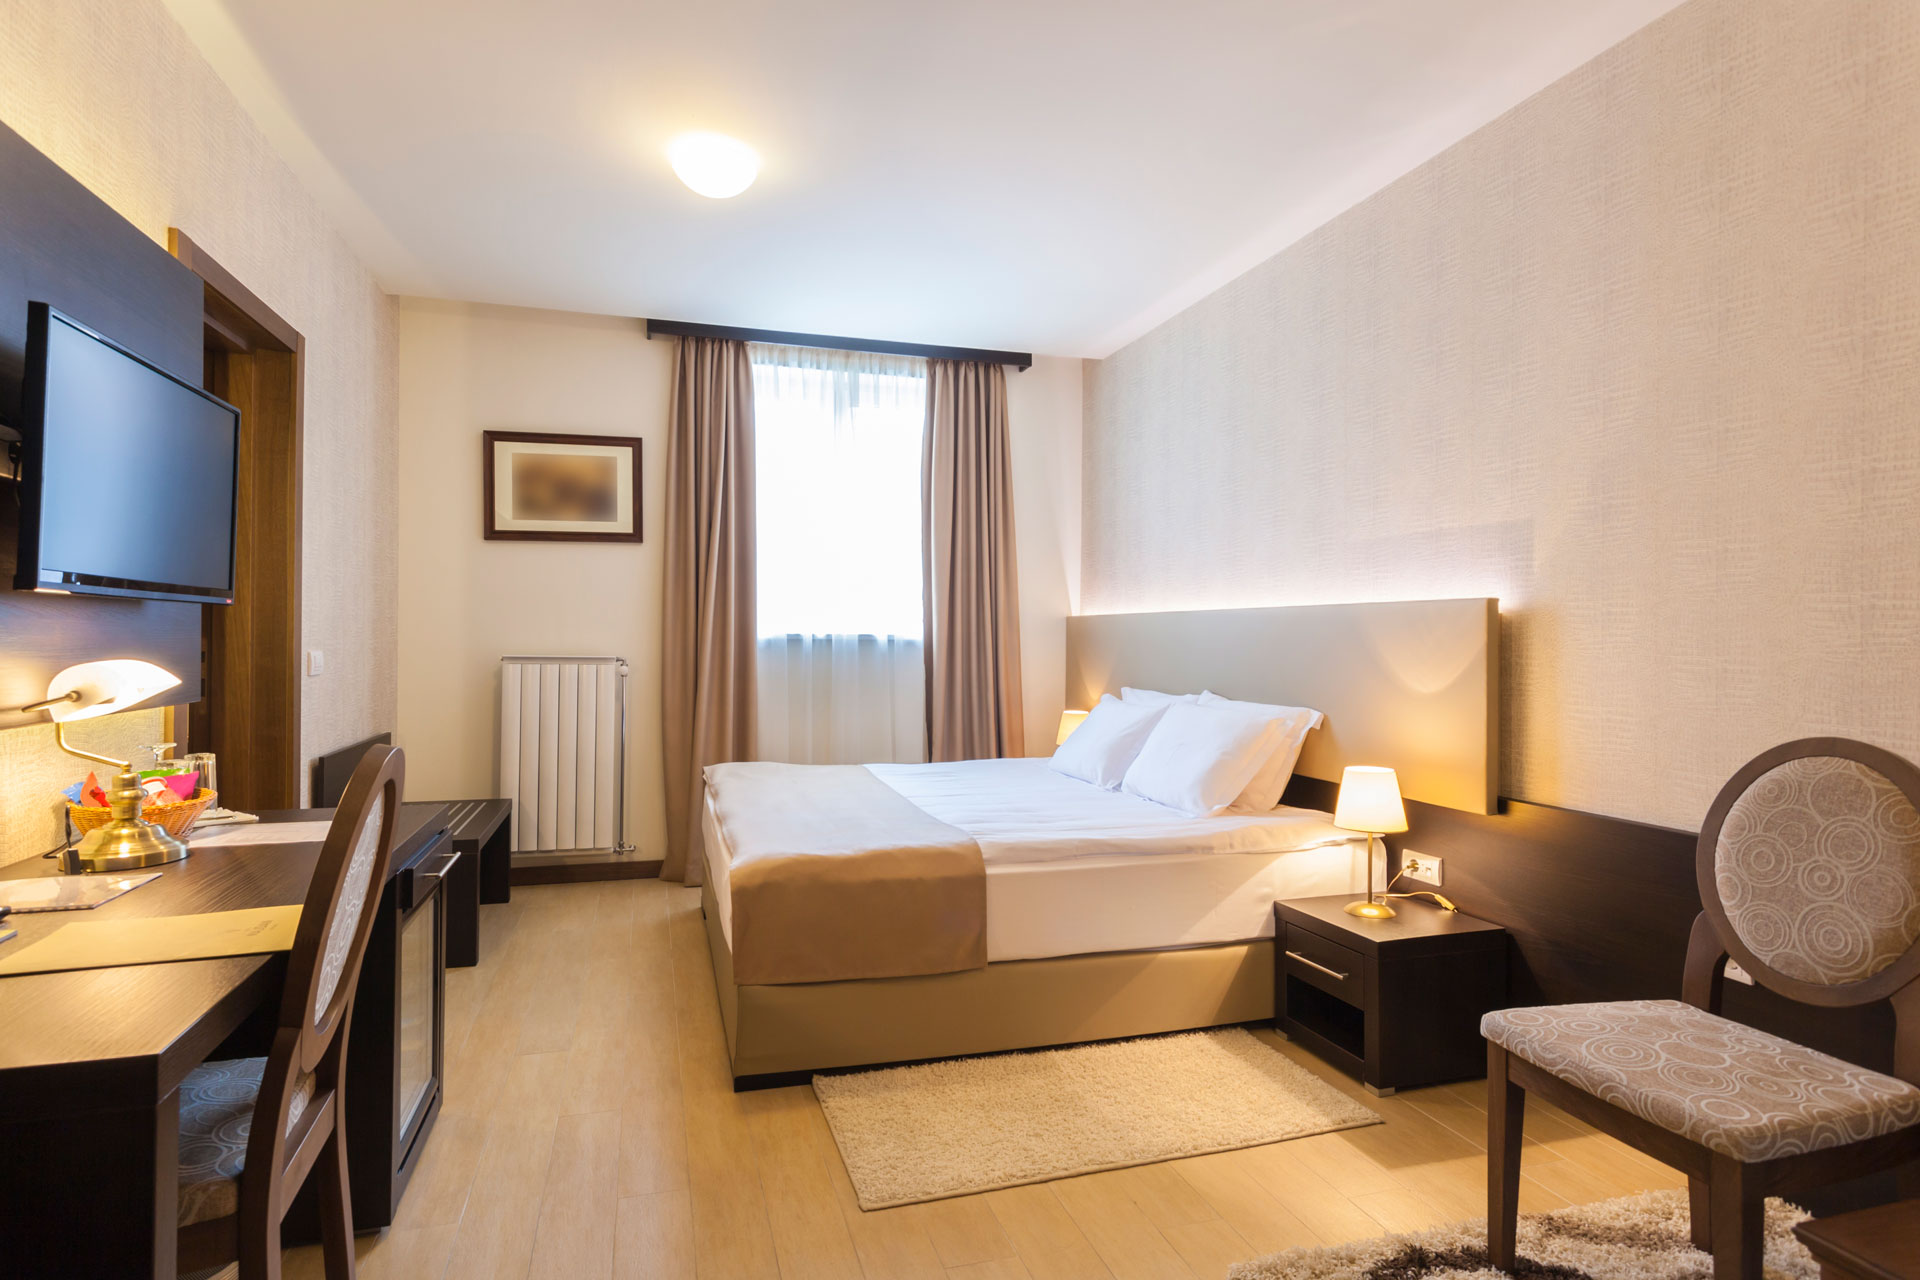 Hotels---In-Room-Image